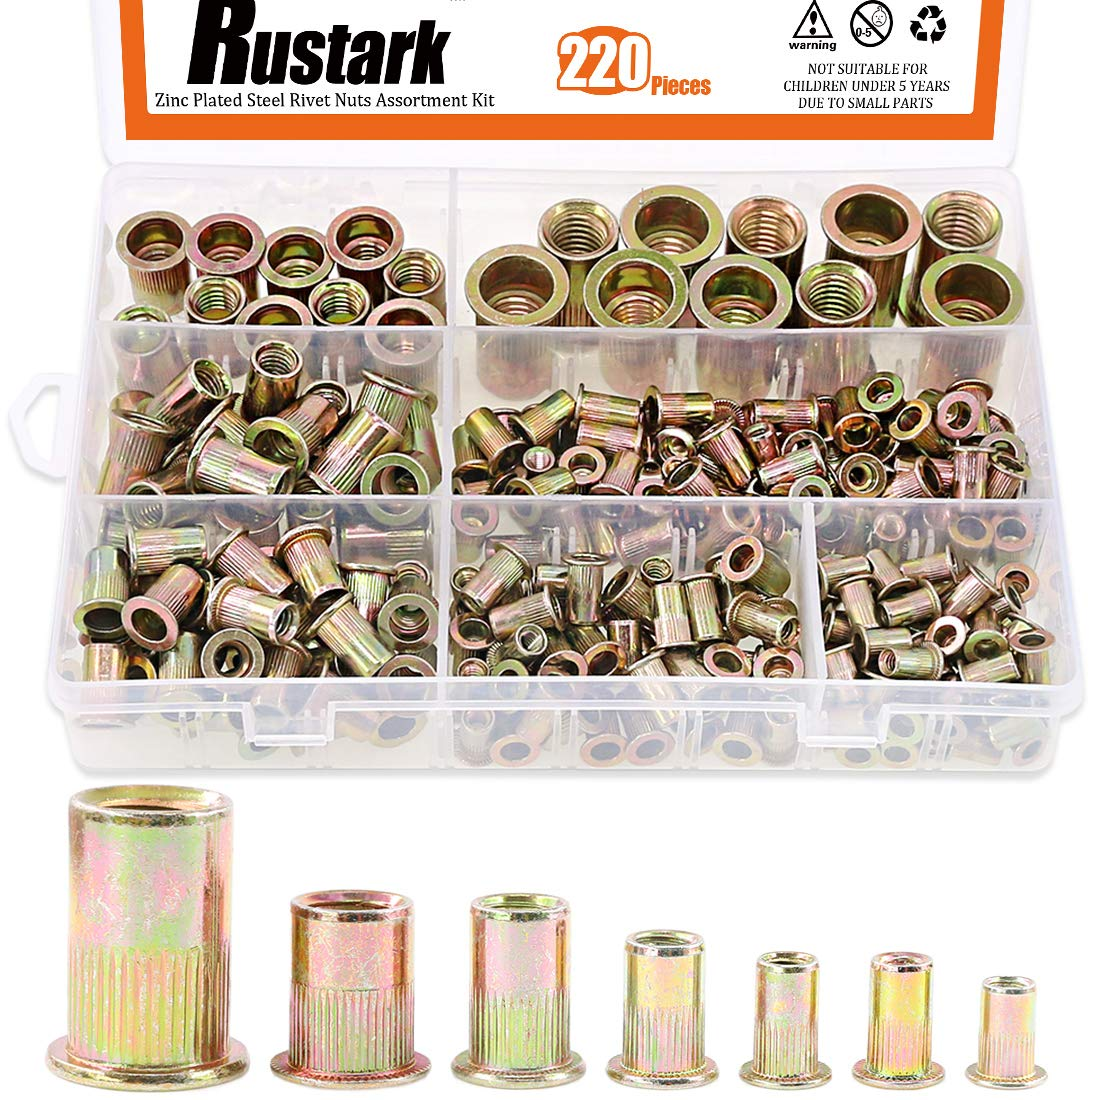 Rustark 120-Pcs #8-32UNC Mixed Zinc Plated Carbon Steel Rivet Nut Flat Head Insert Nutsert Assortment Kit